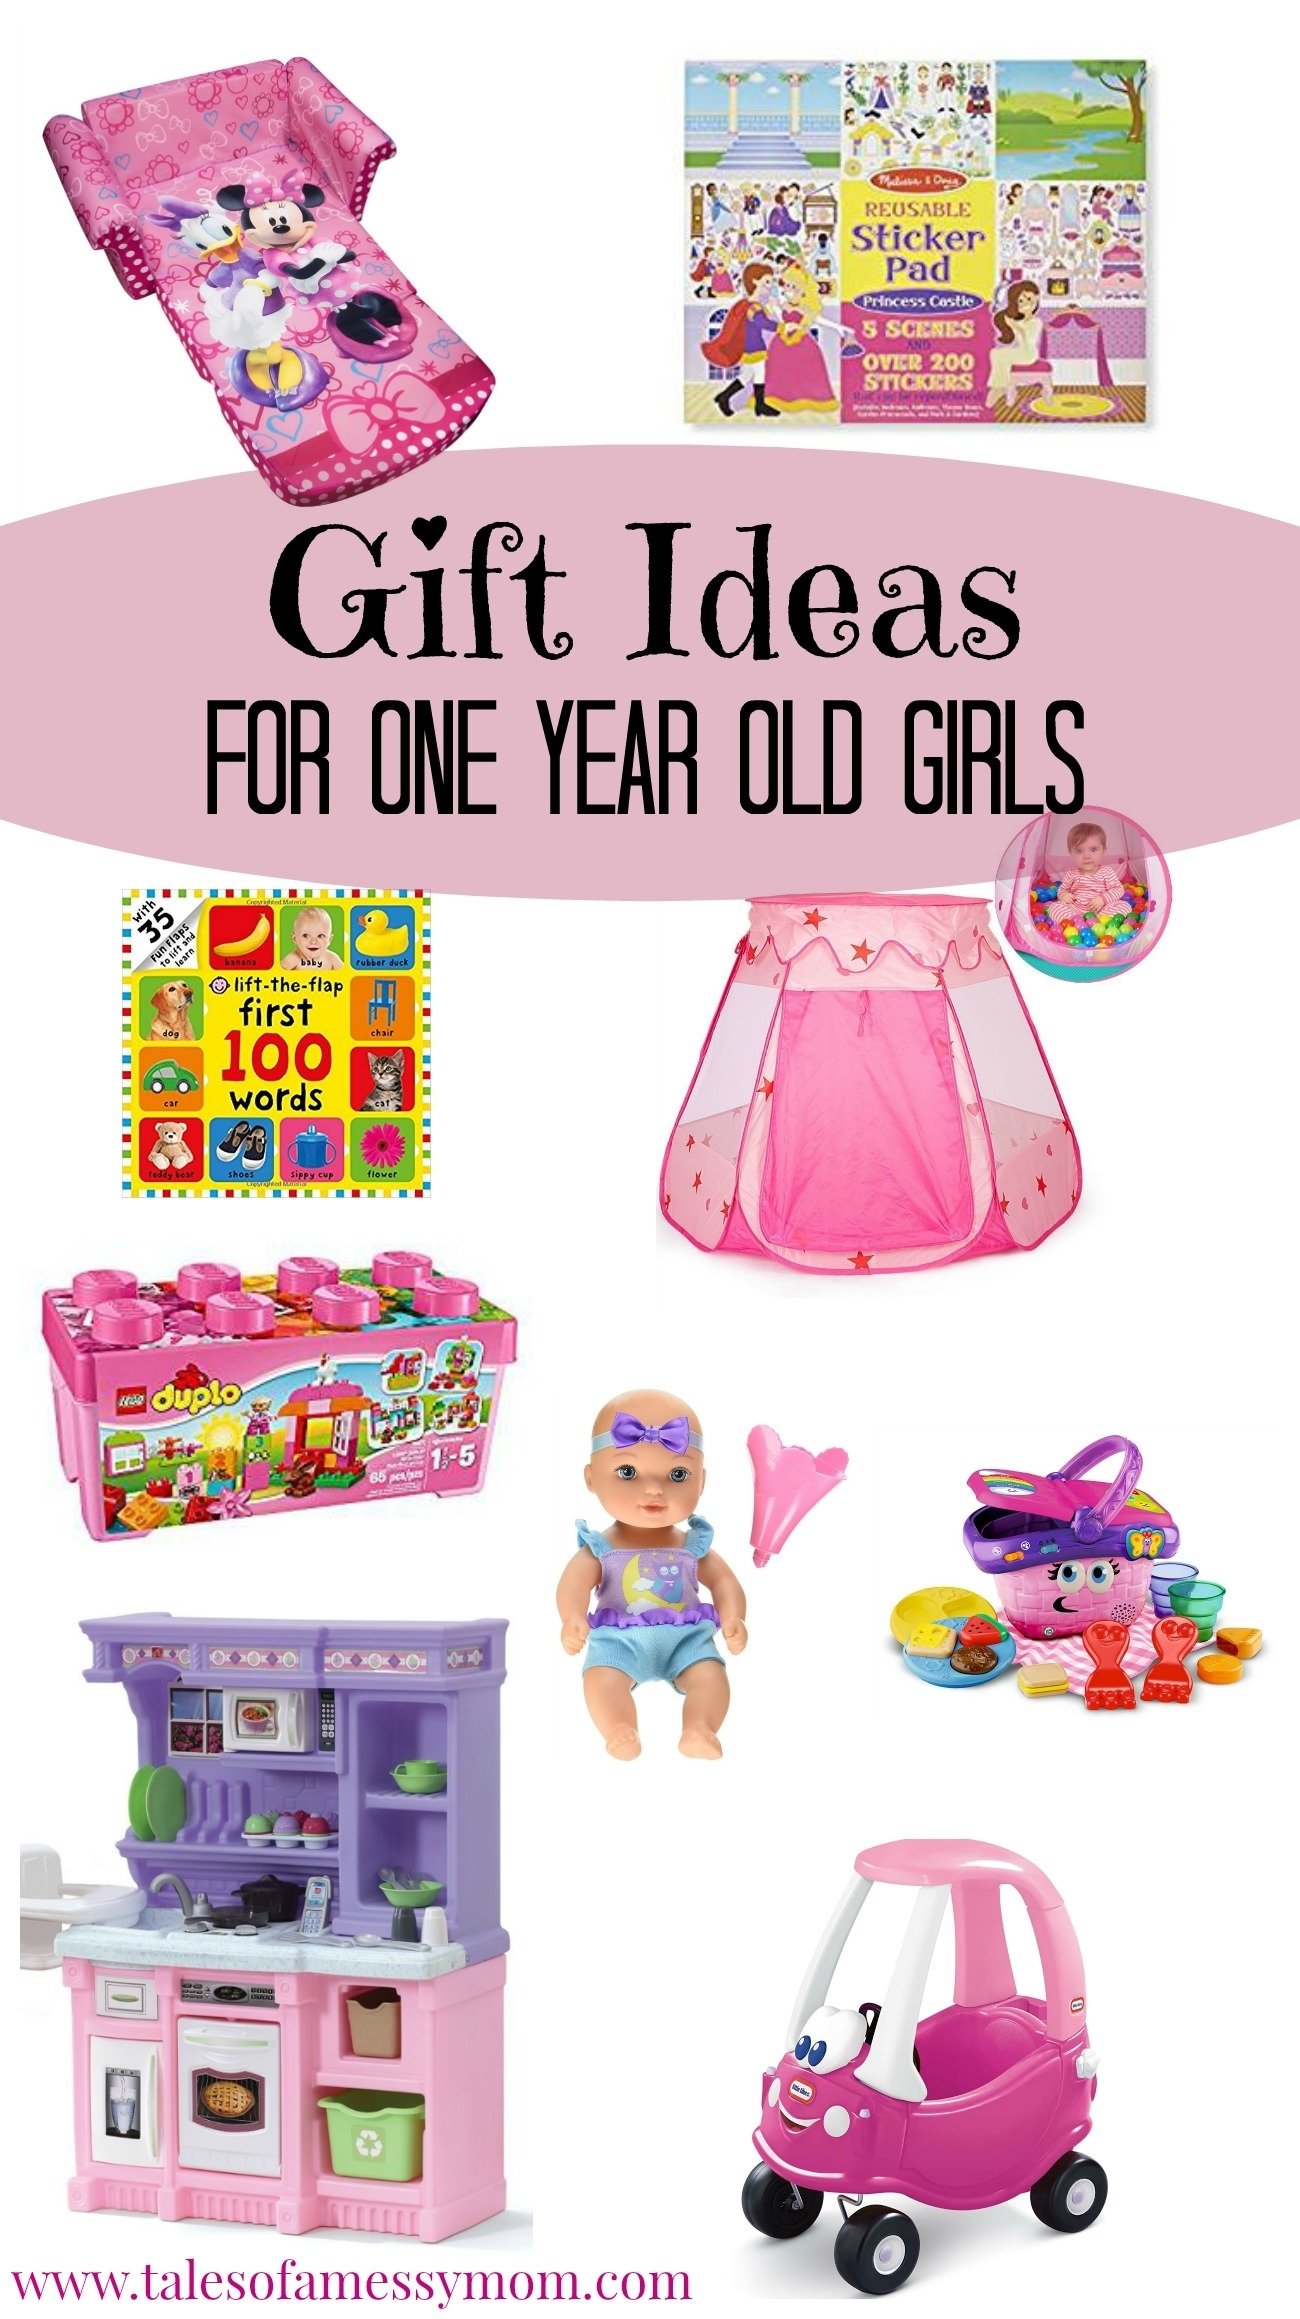 10 Pretty Gift Ideas For One Year Old Girl gift ideas for one year old girls tales of a messy mom 6 2020